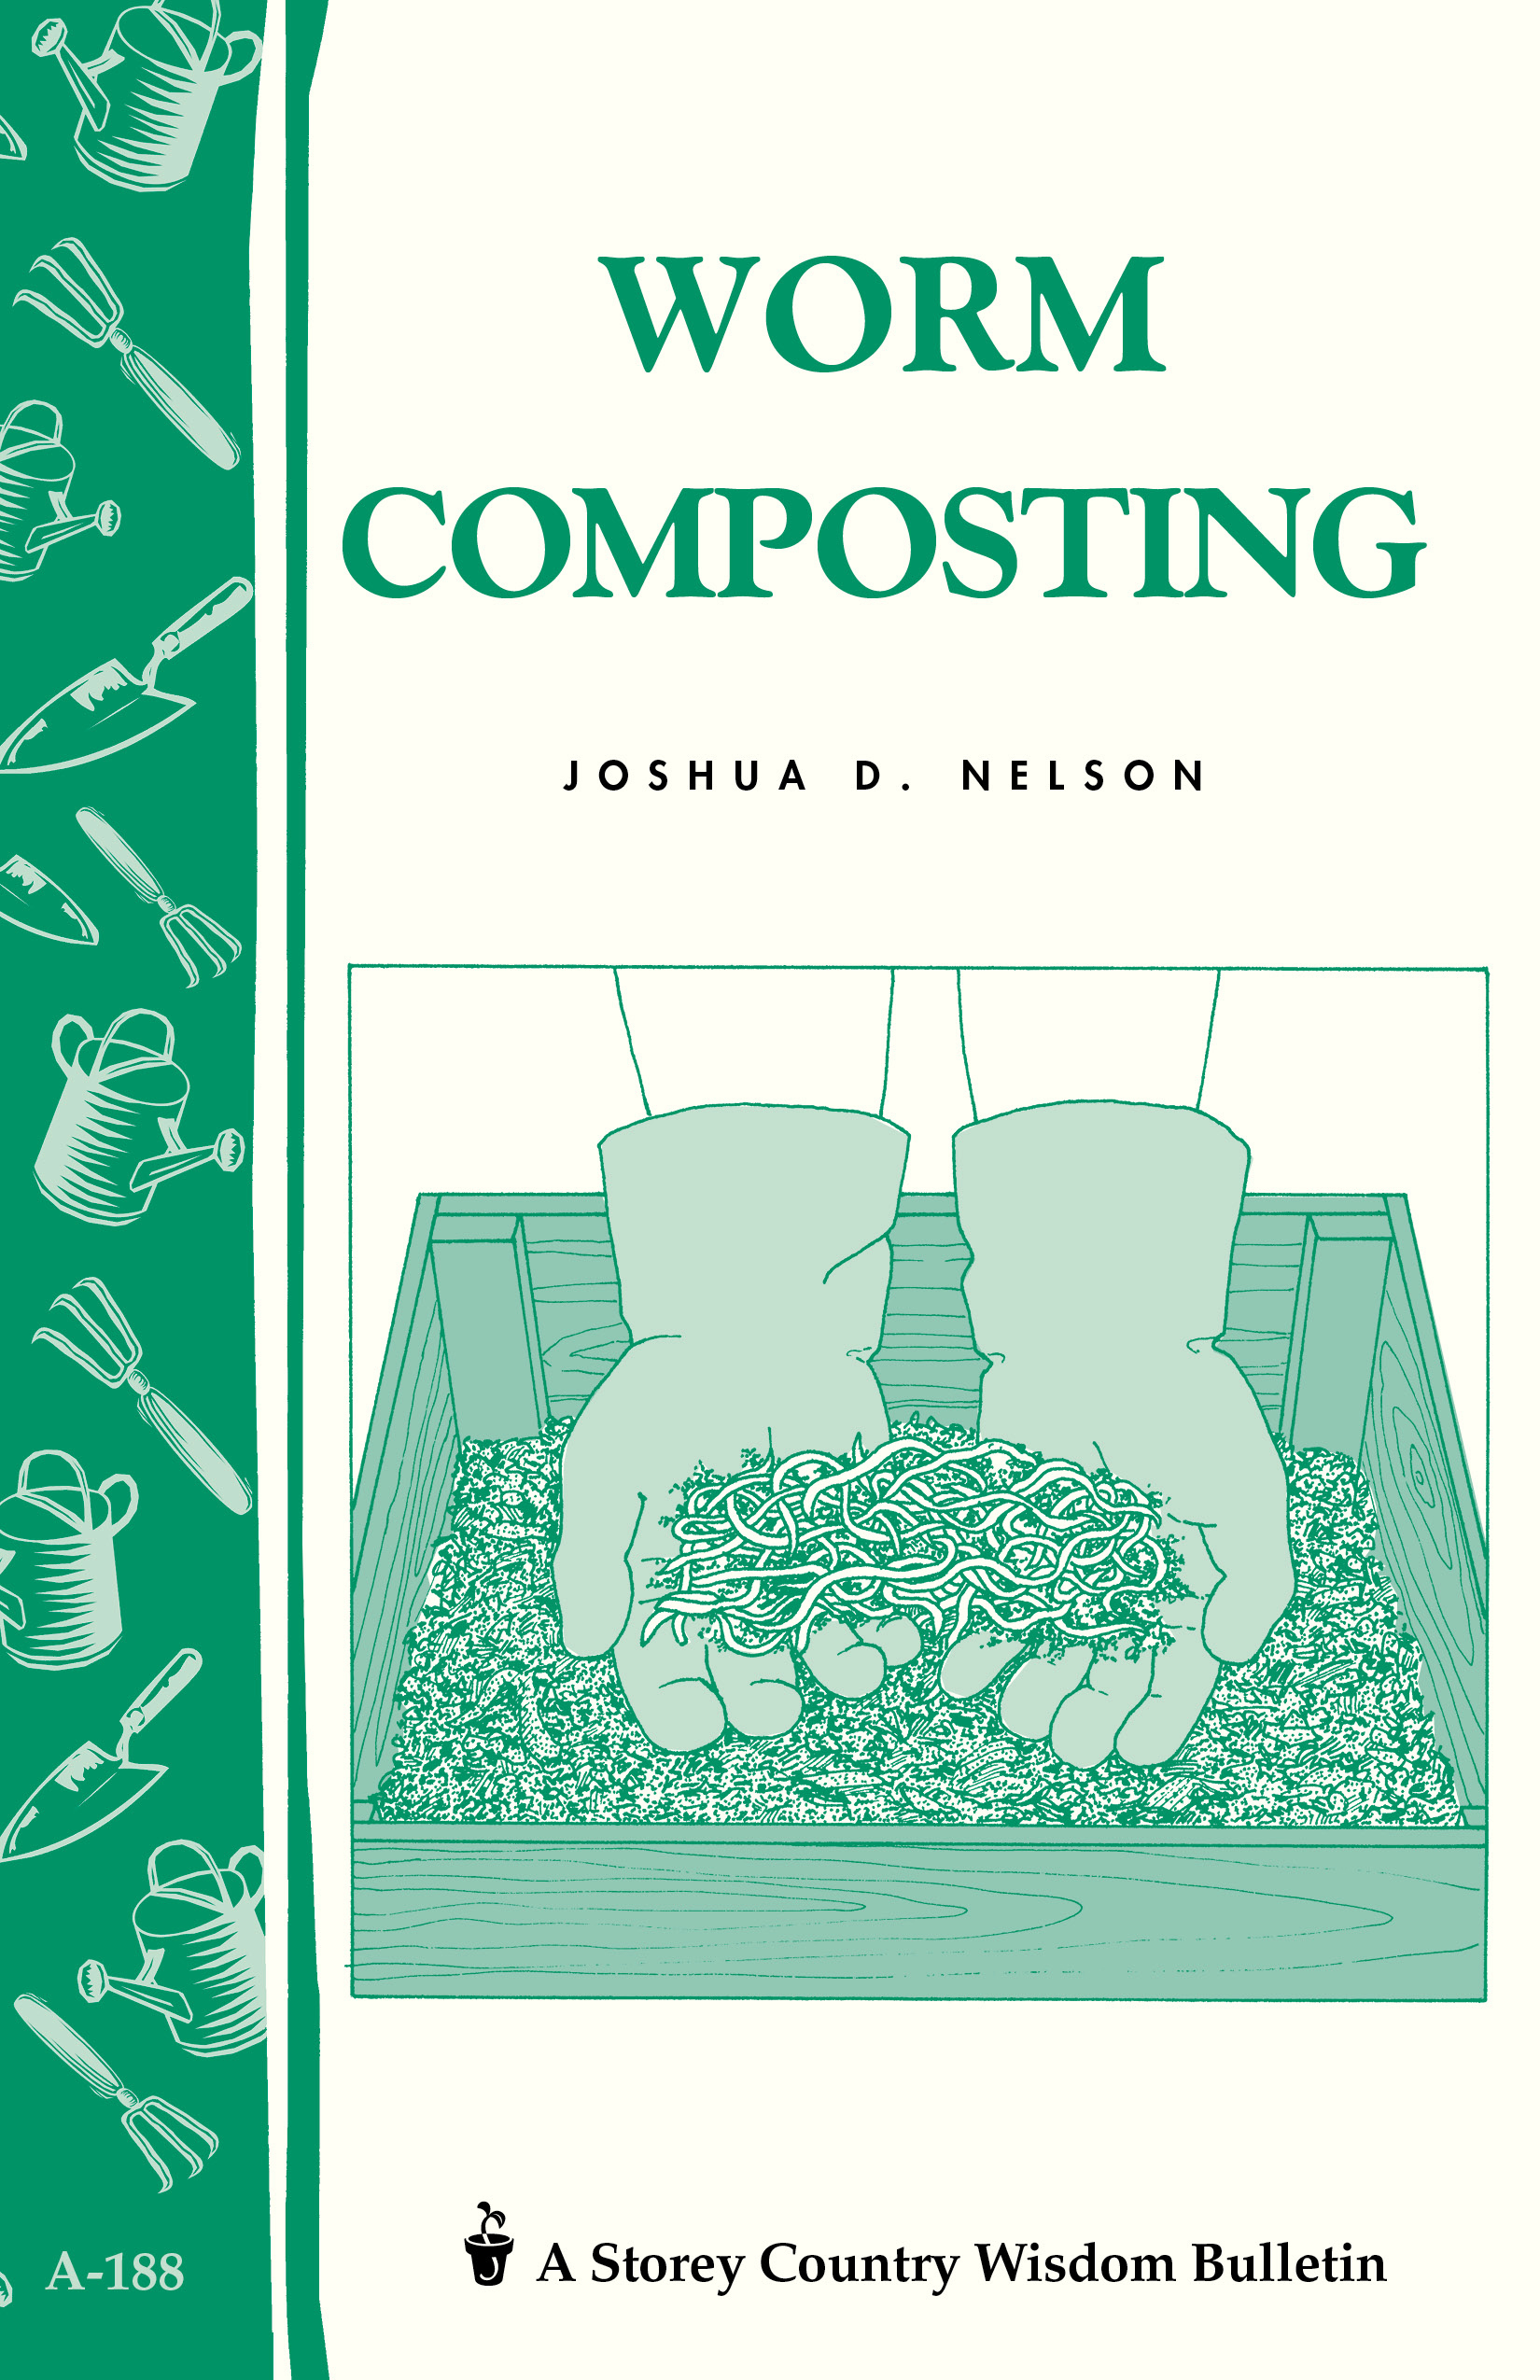 Worm Composting Storey's Country Wisdom Bulletin A-188 - Joshua D. Nelson